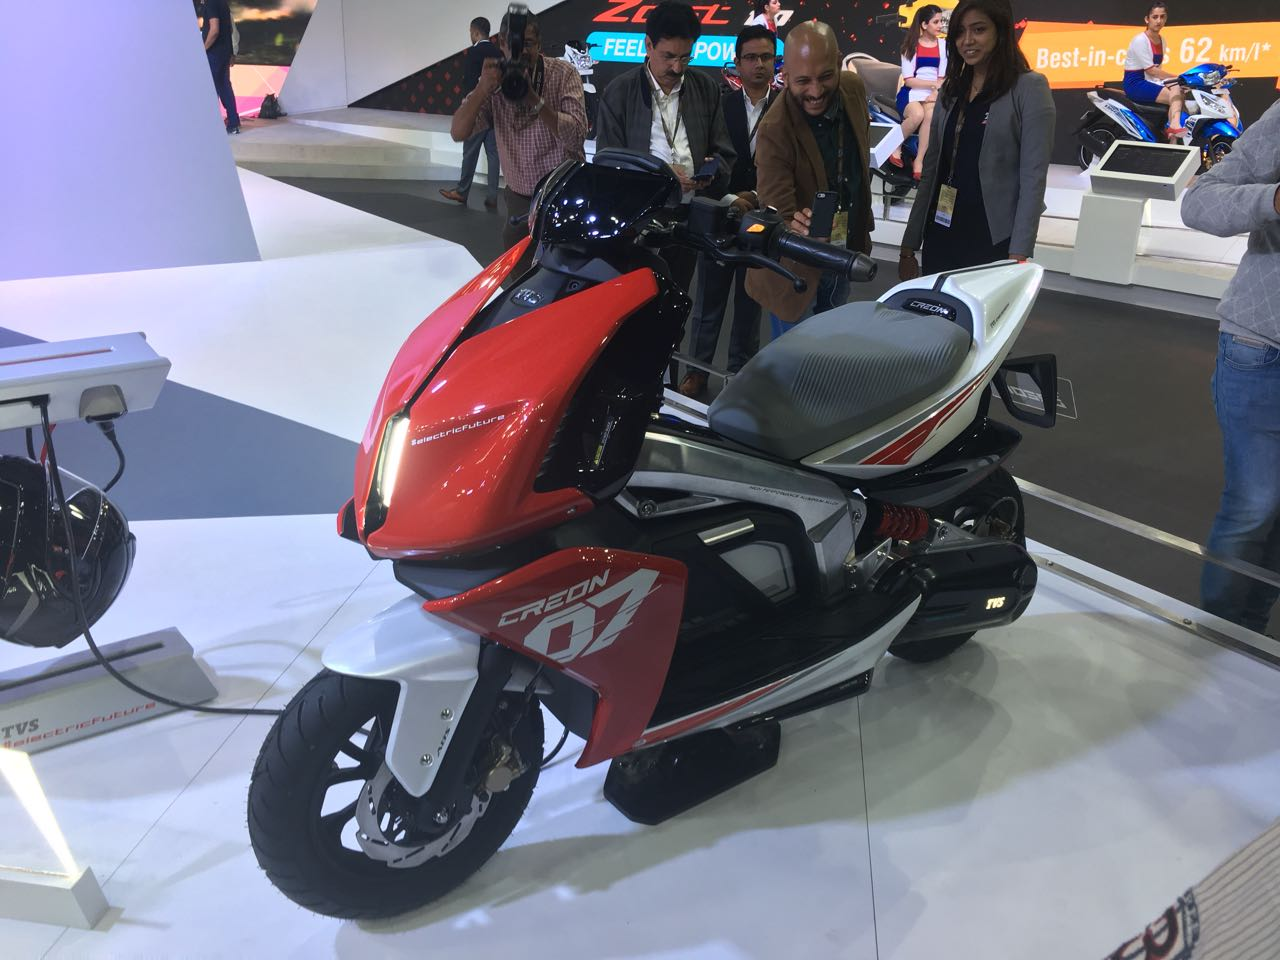 Hero MotoCorp unveils off-roader XPulse, 125cc Maestro scooters at Auto Expo